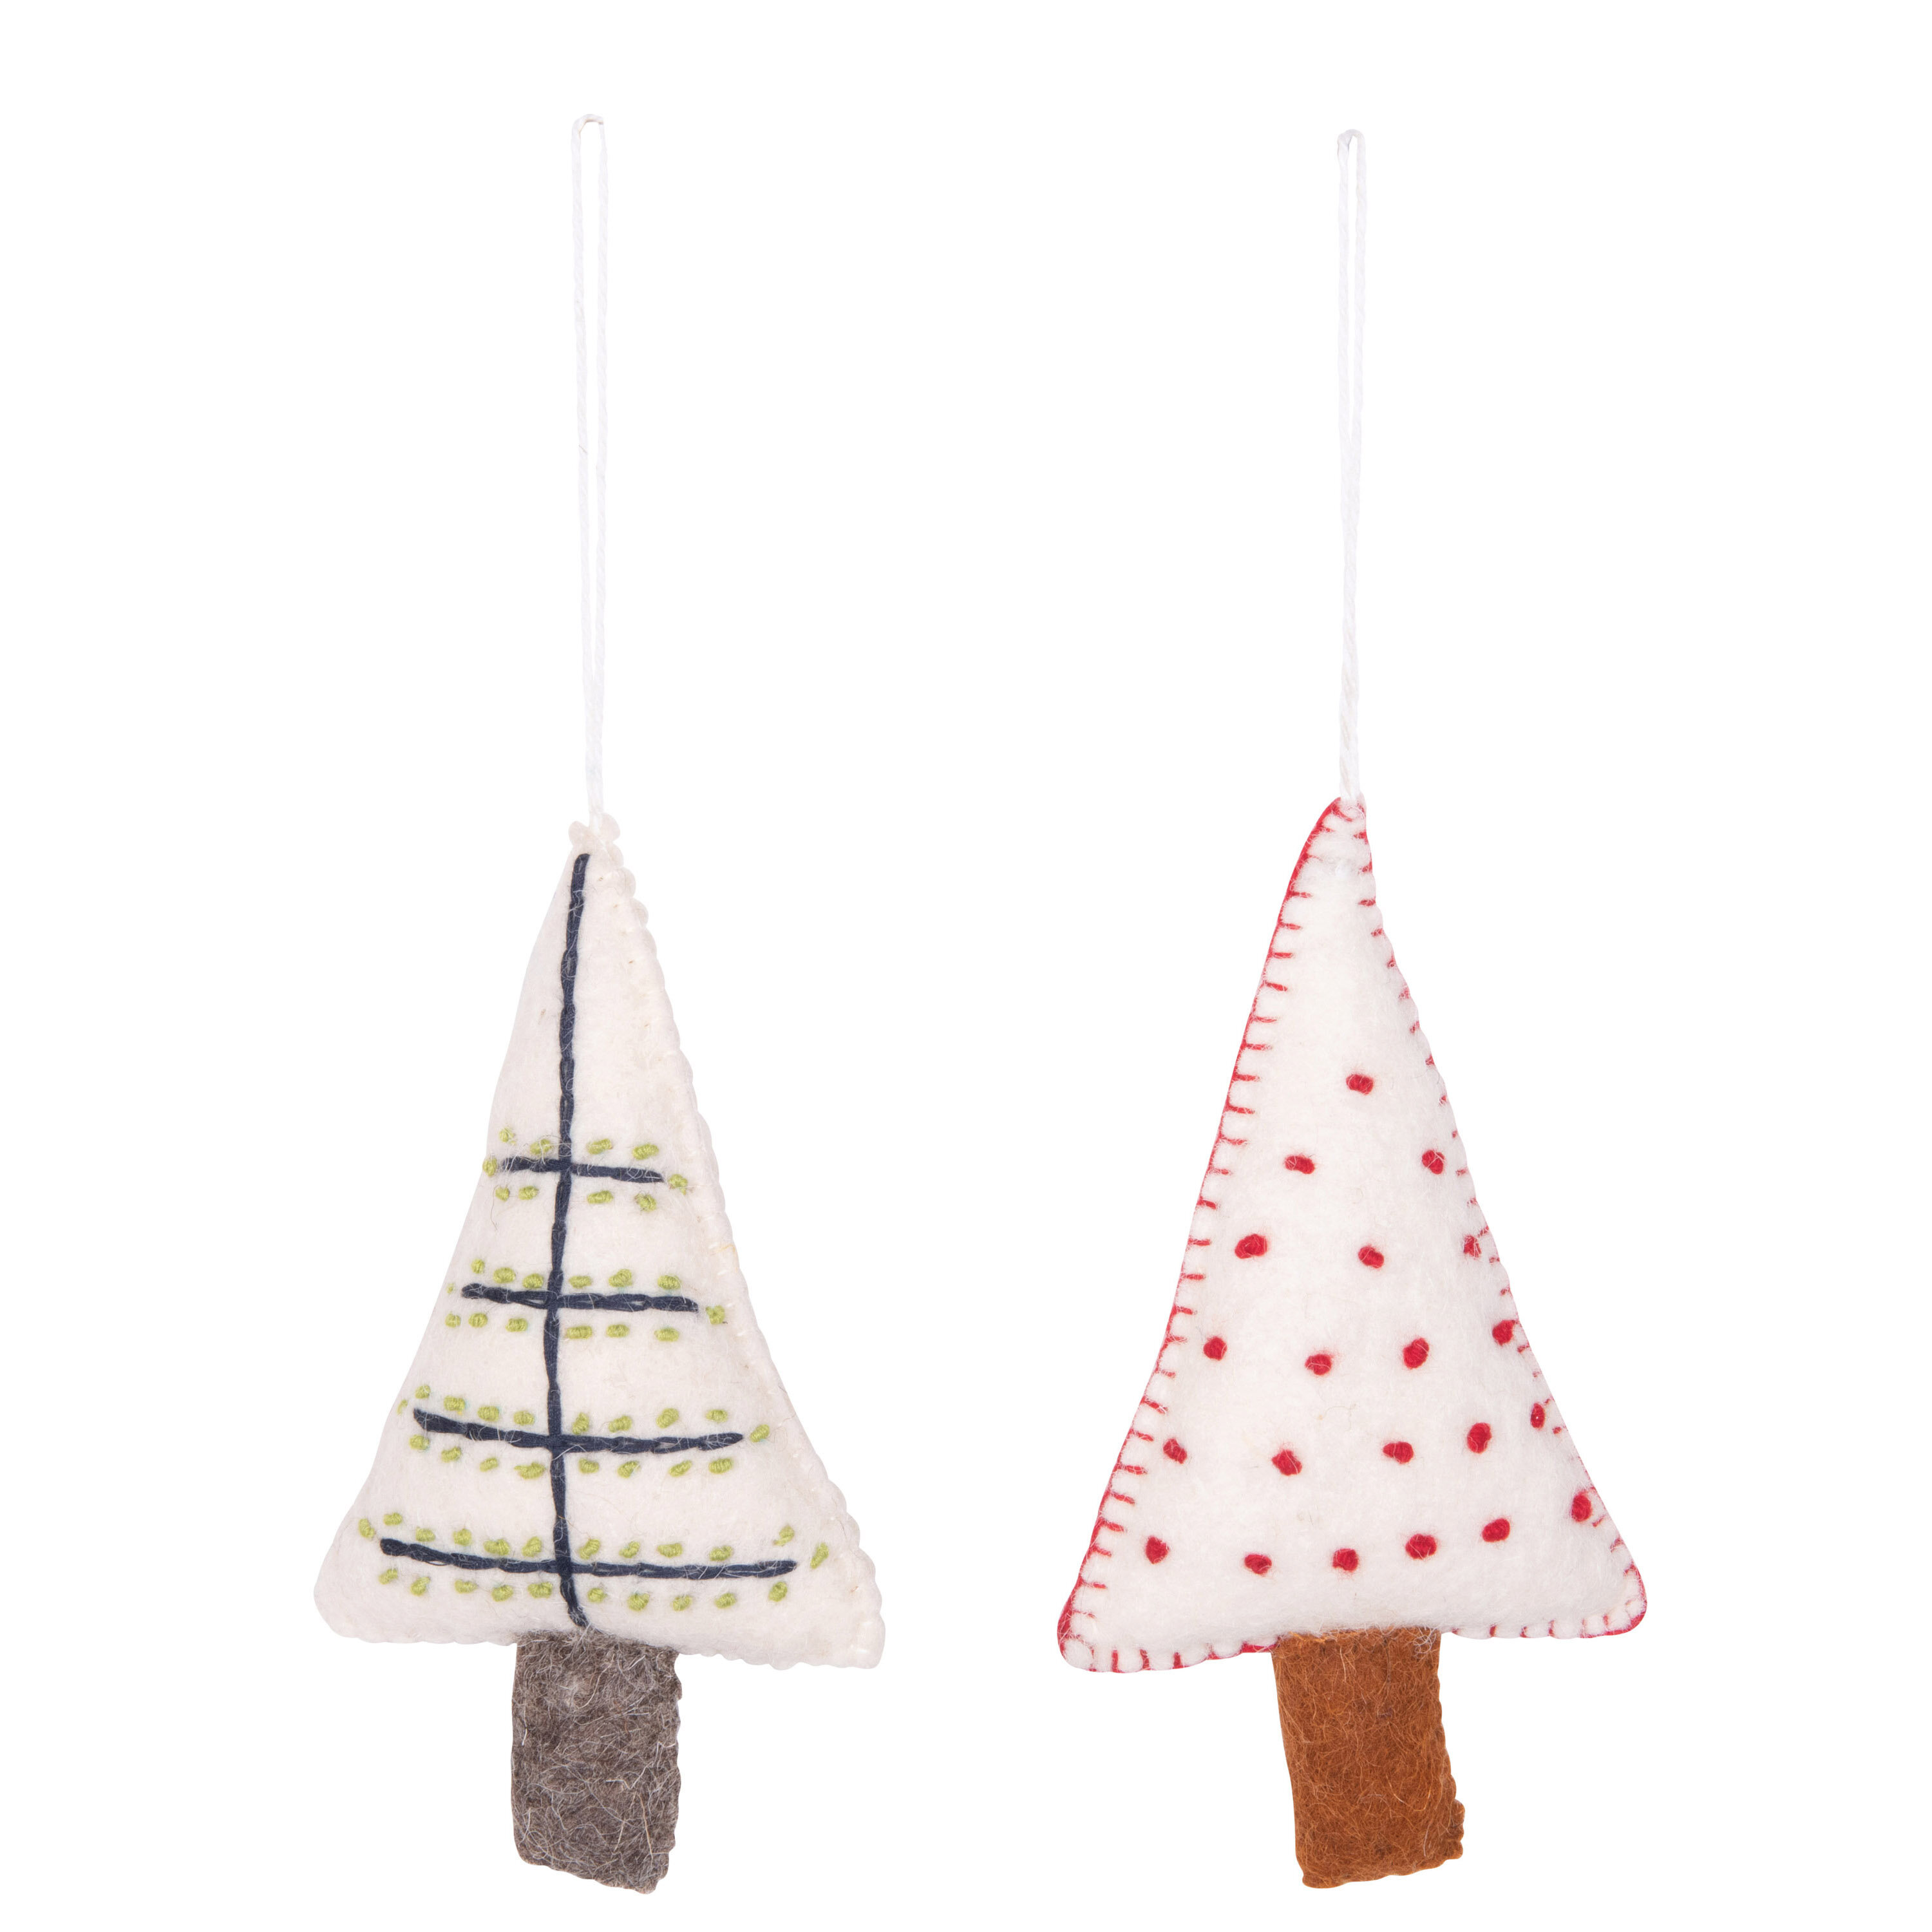 2 Piece Wool Felt Tree Holiday Shaped Ornament Set Joss Main